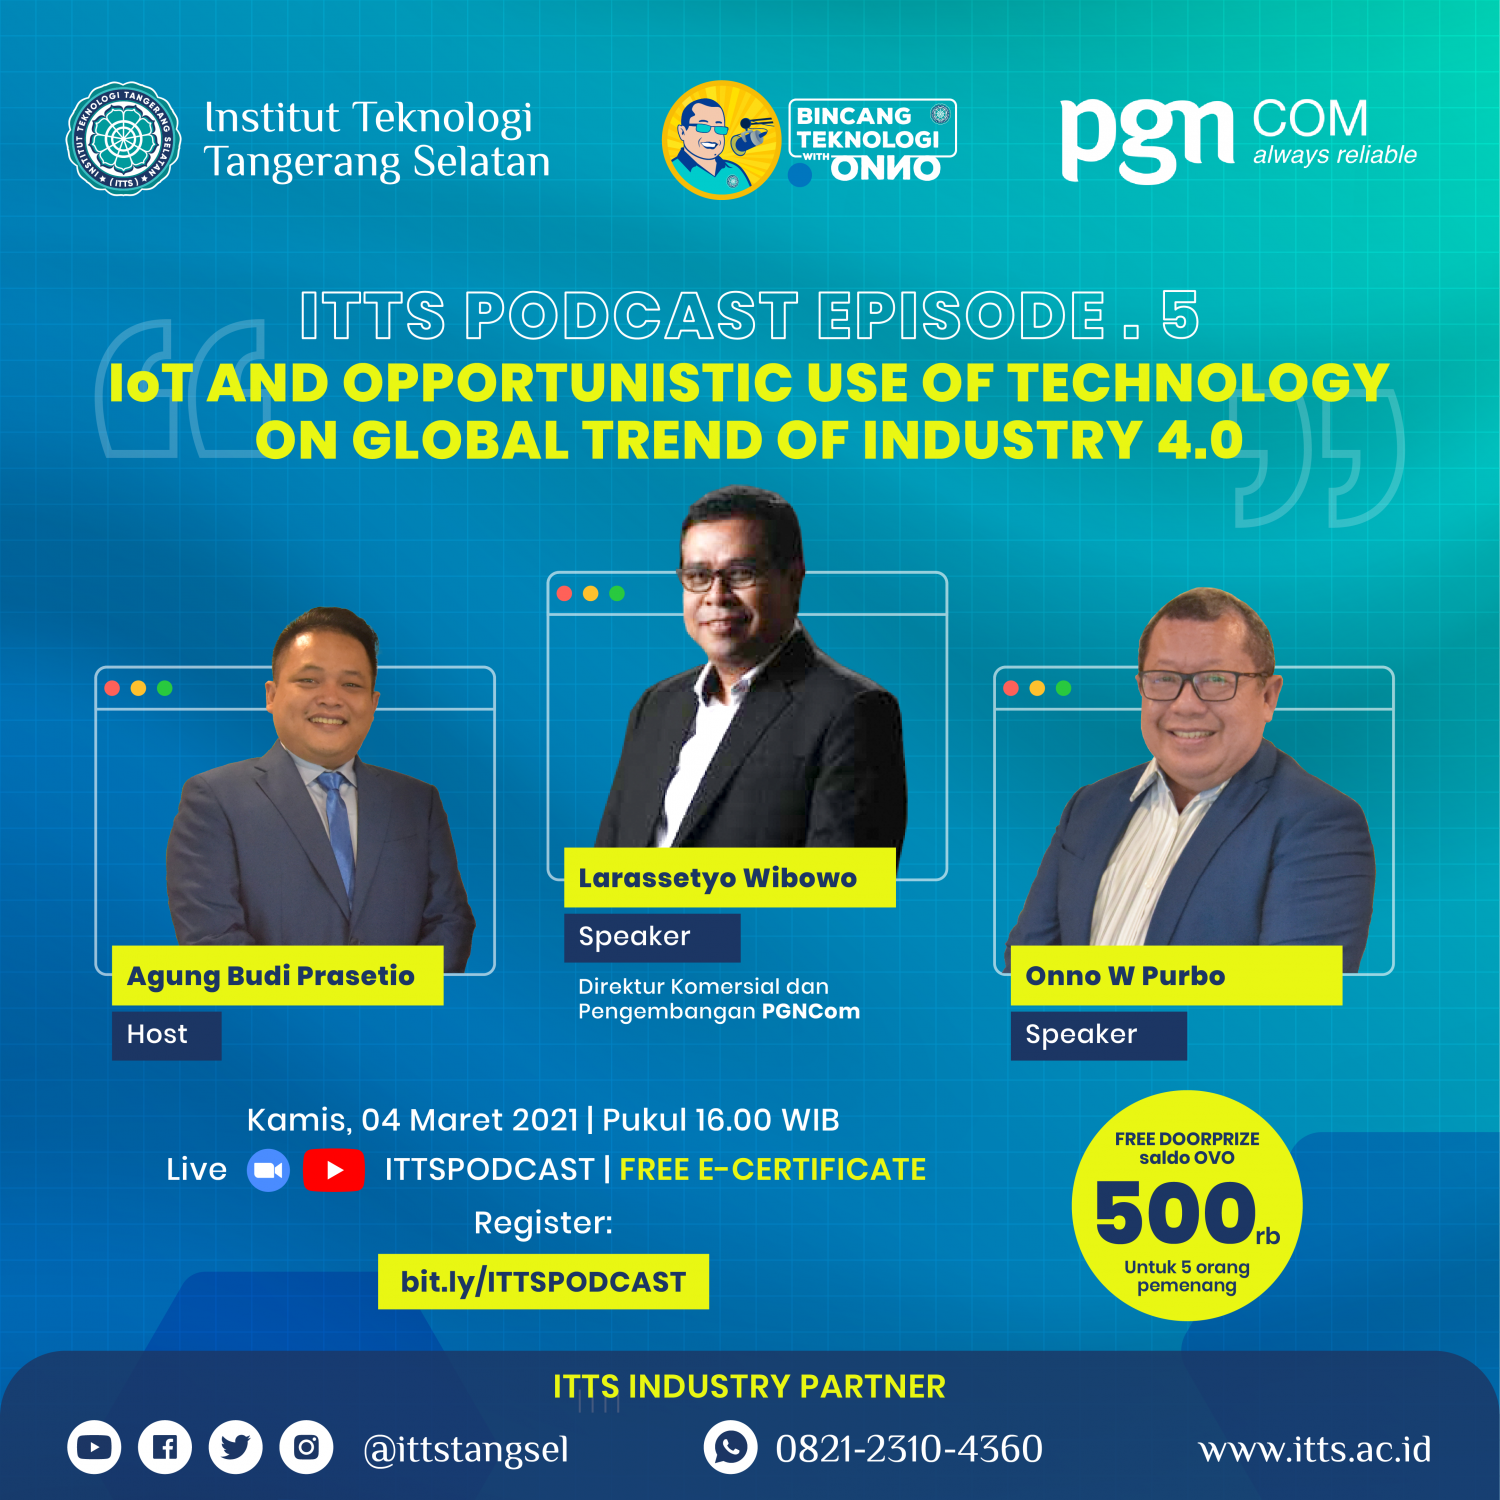 IoT and Opportunistic Use of Technology On Global Trend of Industry 4.0